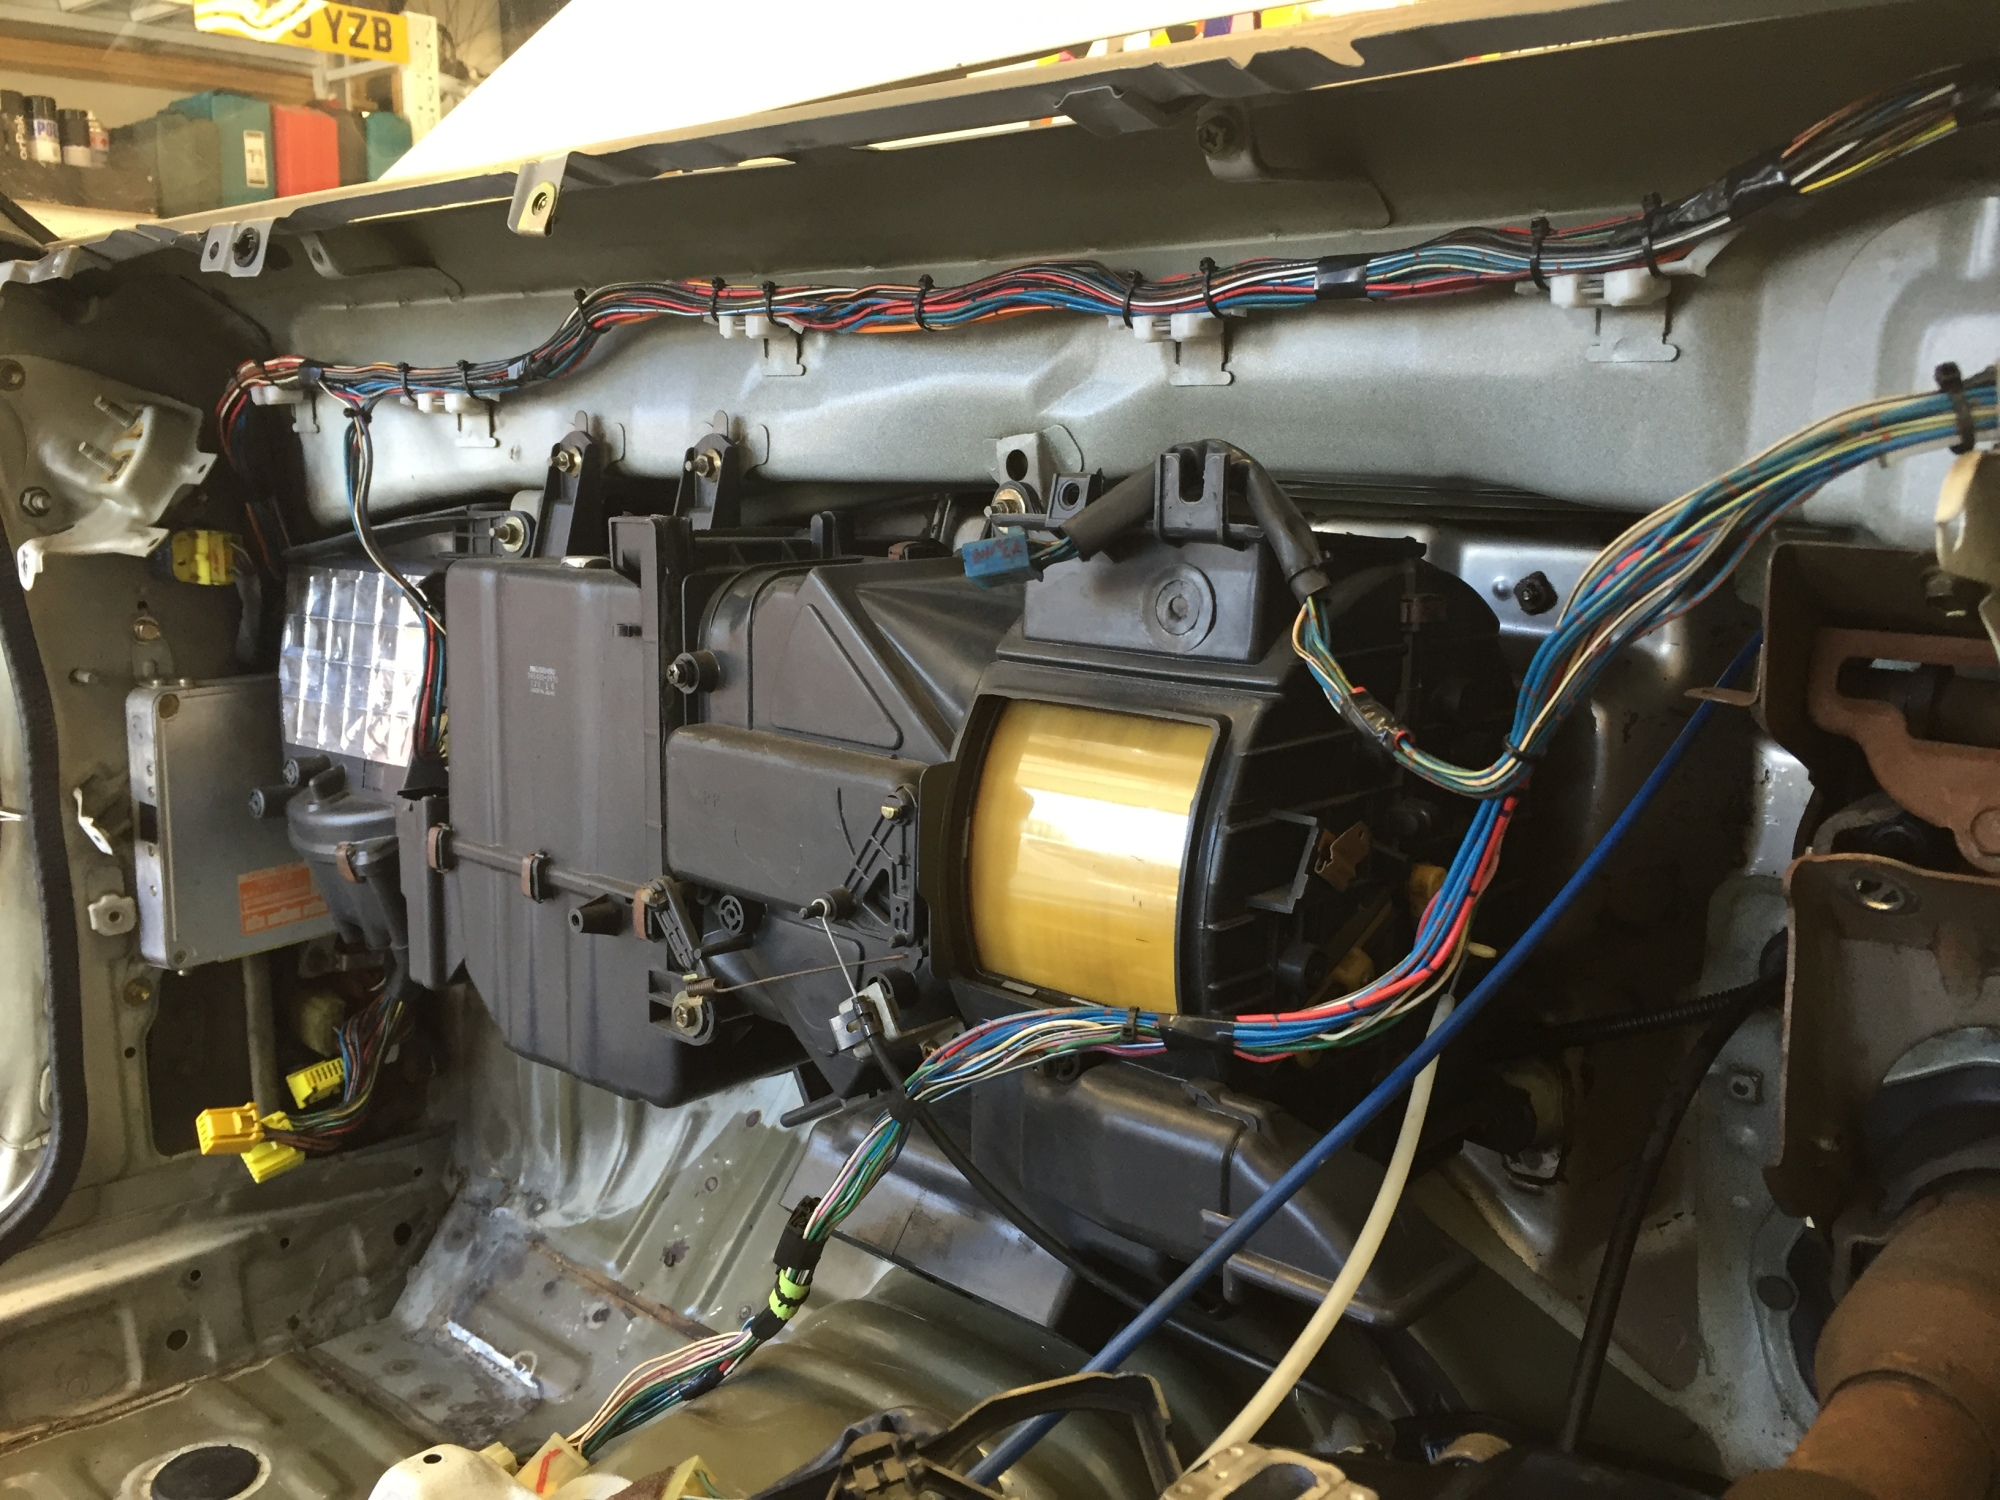 Wiring Take One Super86 Ae86 Ac January 1 2016